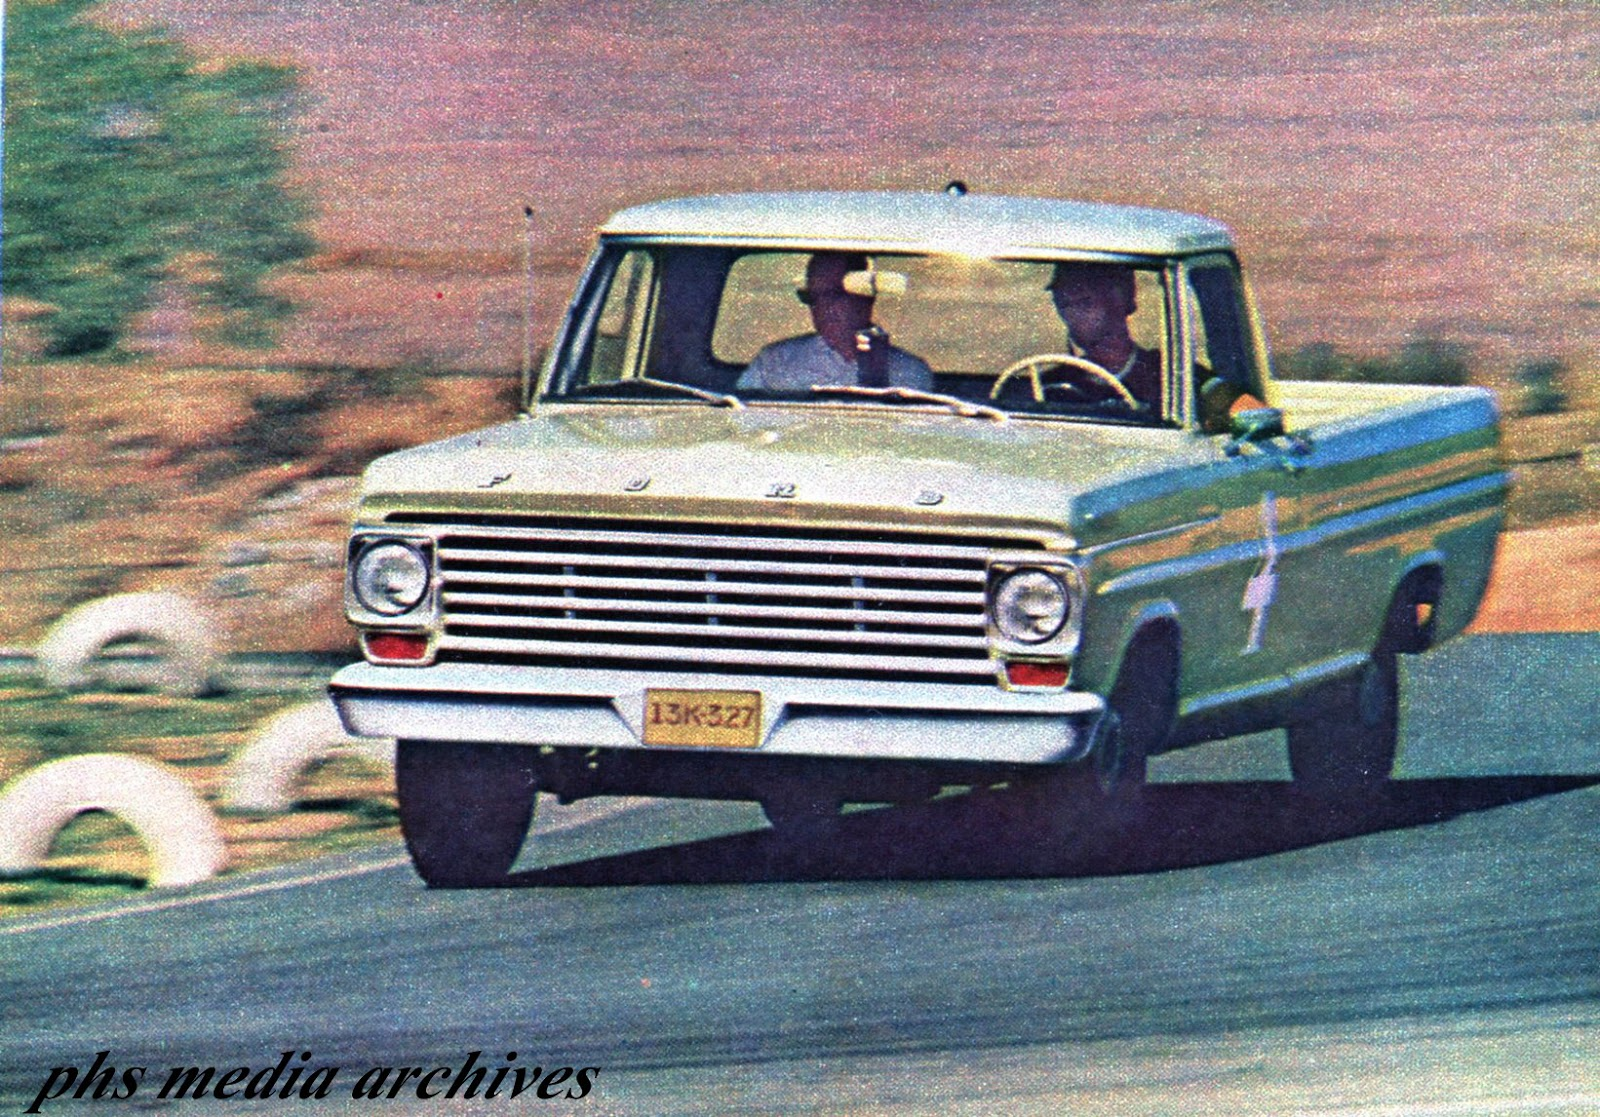 Phscollectorcarworld October 2017 1955 Ford F100 Truck Moon Caps The Toughness Of Was Driven Home Forcefully In A 67000 Mile Test At Riverside Track Known For Disassembling Big Heavy Cars Poorly Built